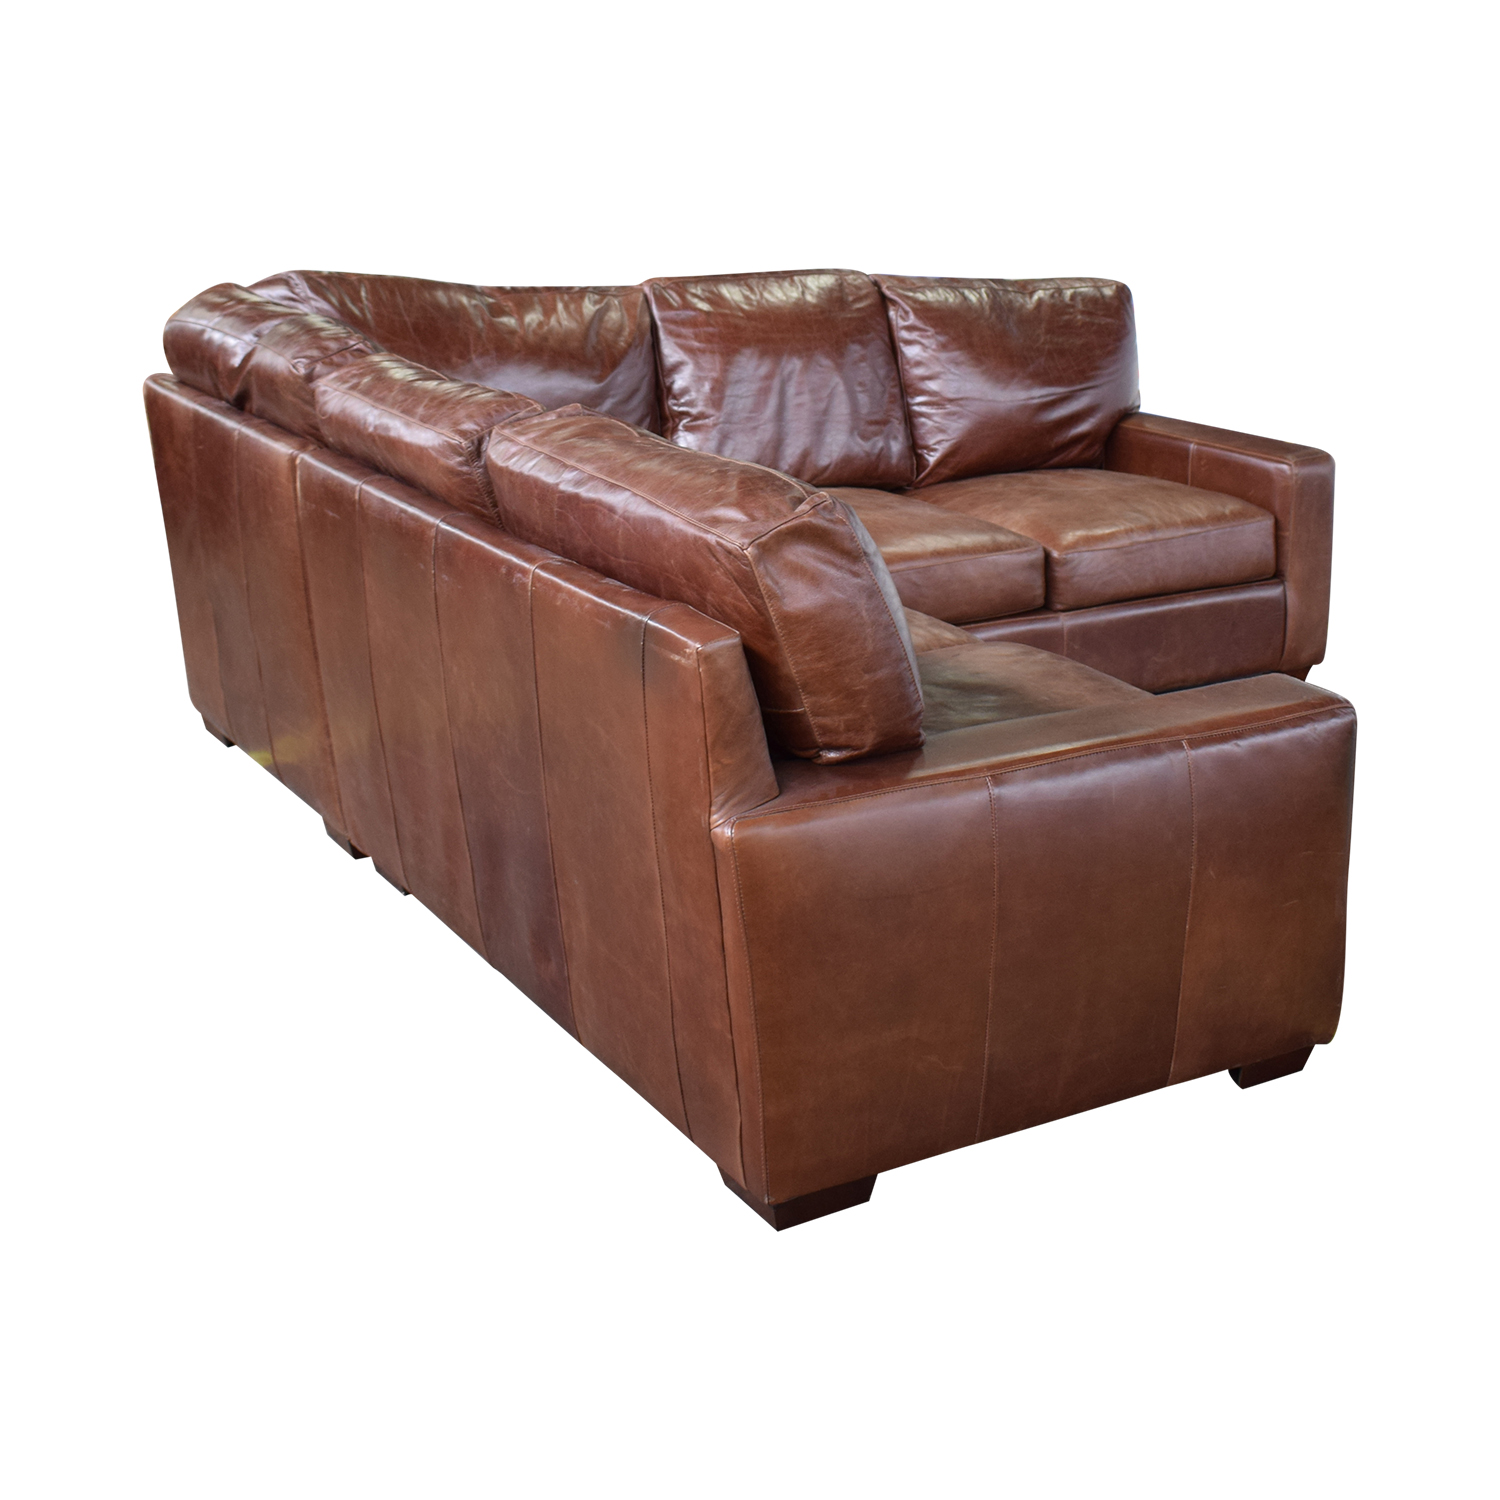 ABC Carpet & Home ABC Carpet & Home Leather Sectional Sectionals